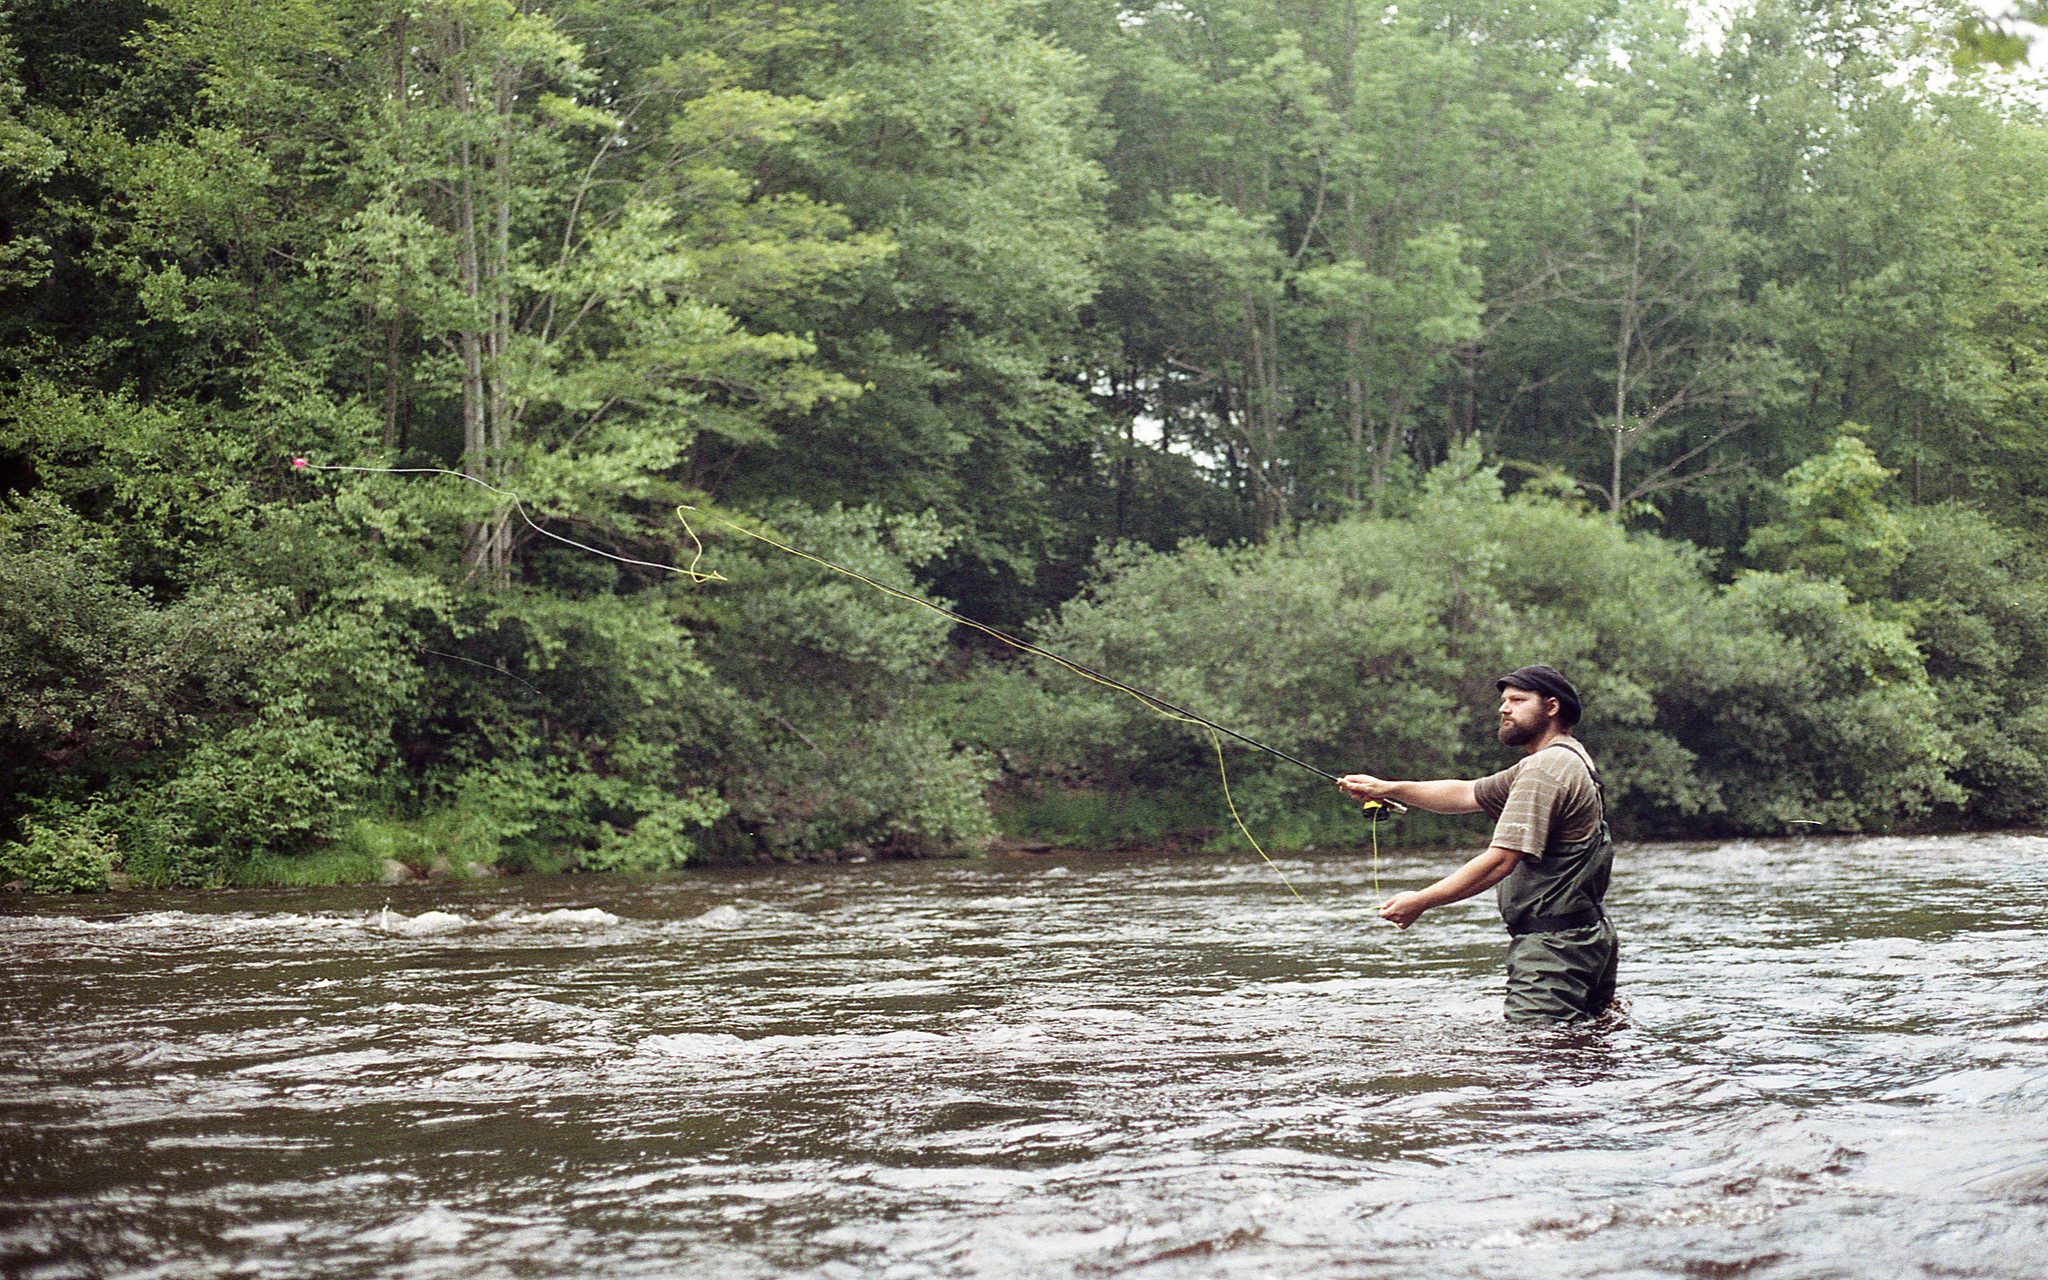 fly fishing_CC flickr_Patrick Gensel.jpg